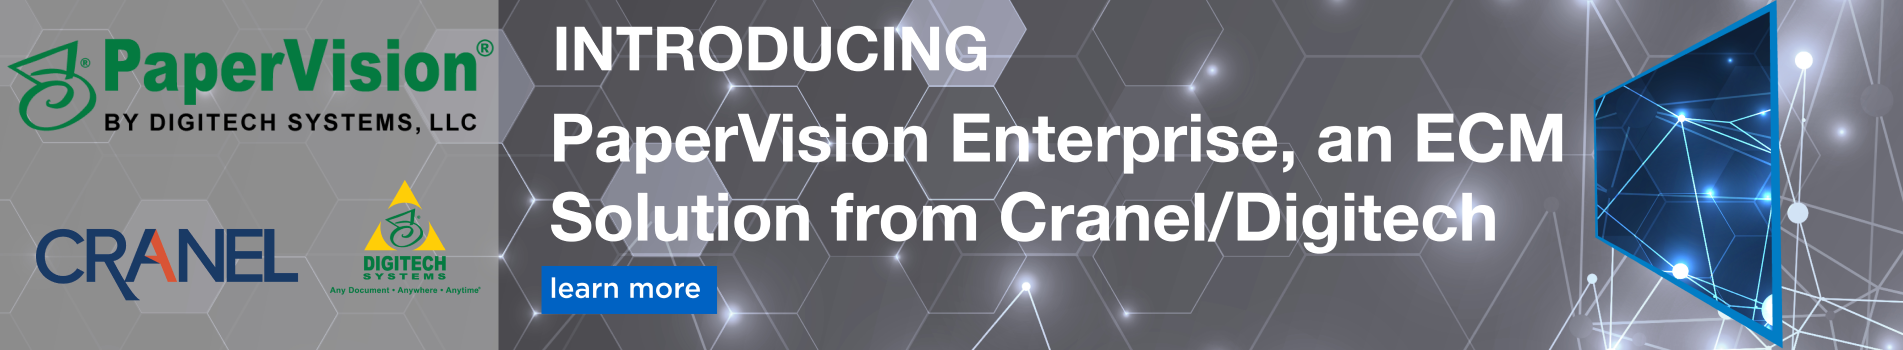 introducing PaperVision Enterprise, an ECM Solution from Cranel-Digitech